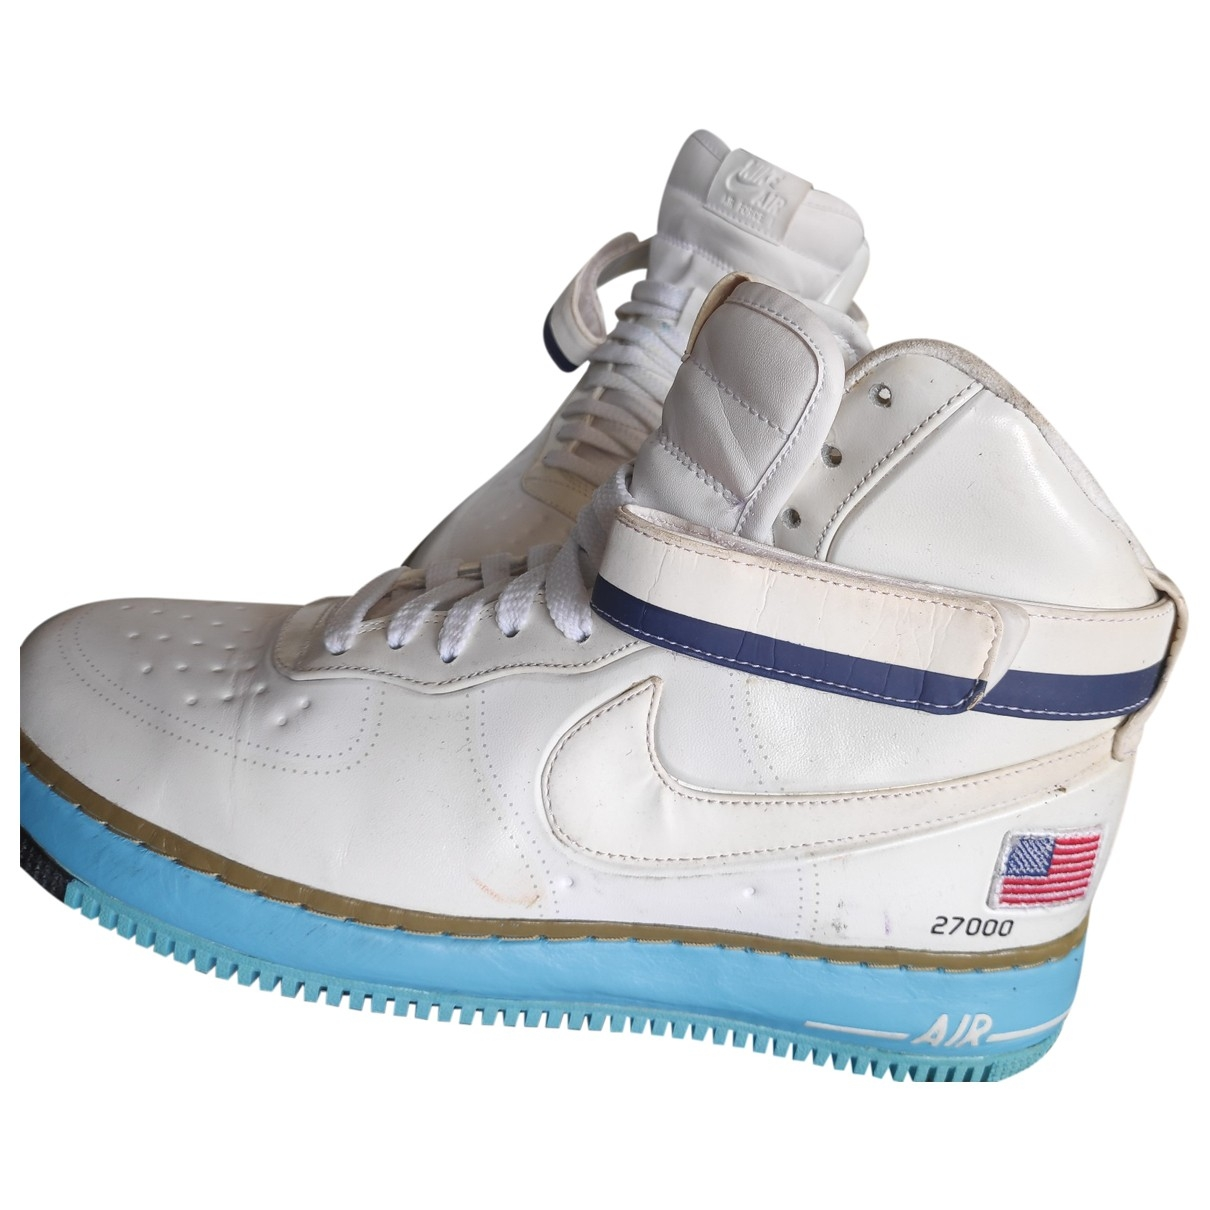 Nike Air Force 1 White Patent leather Trainers for Men 45.5 EU